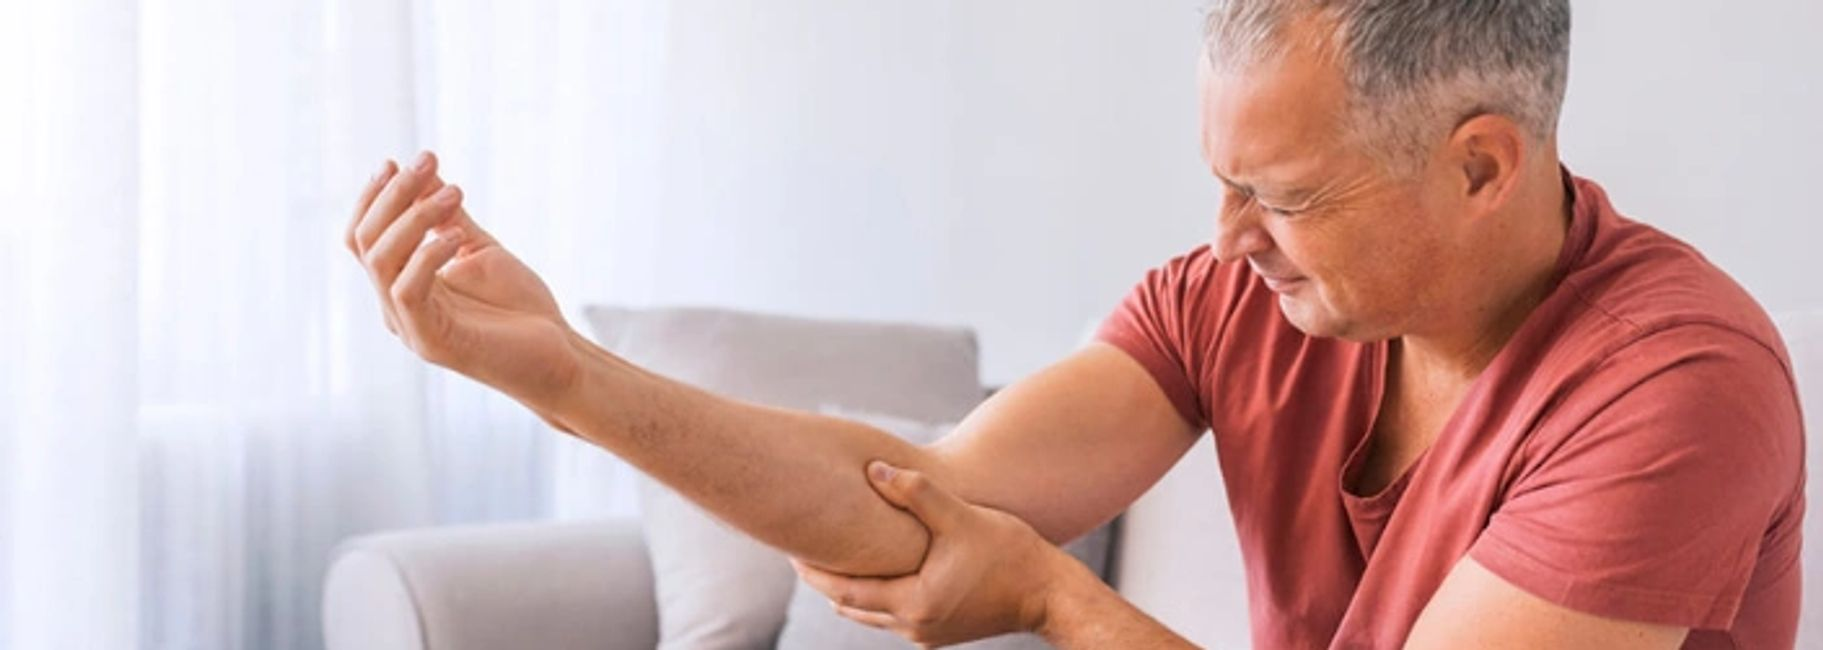 A man with grey hair and a red t-shirt holds his elbow in pain